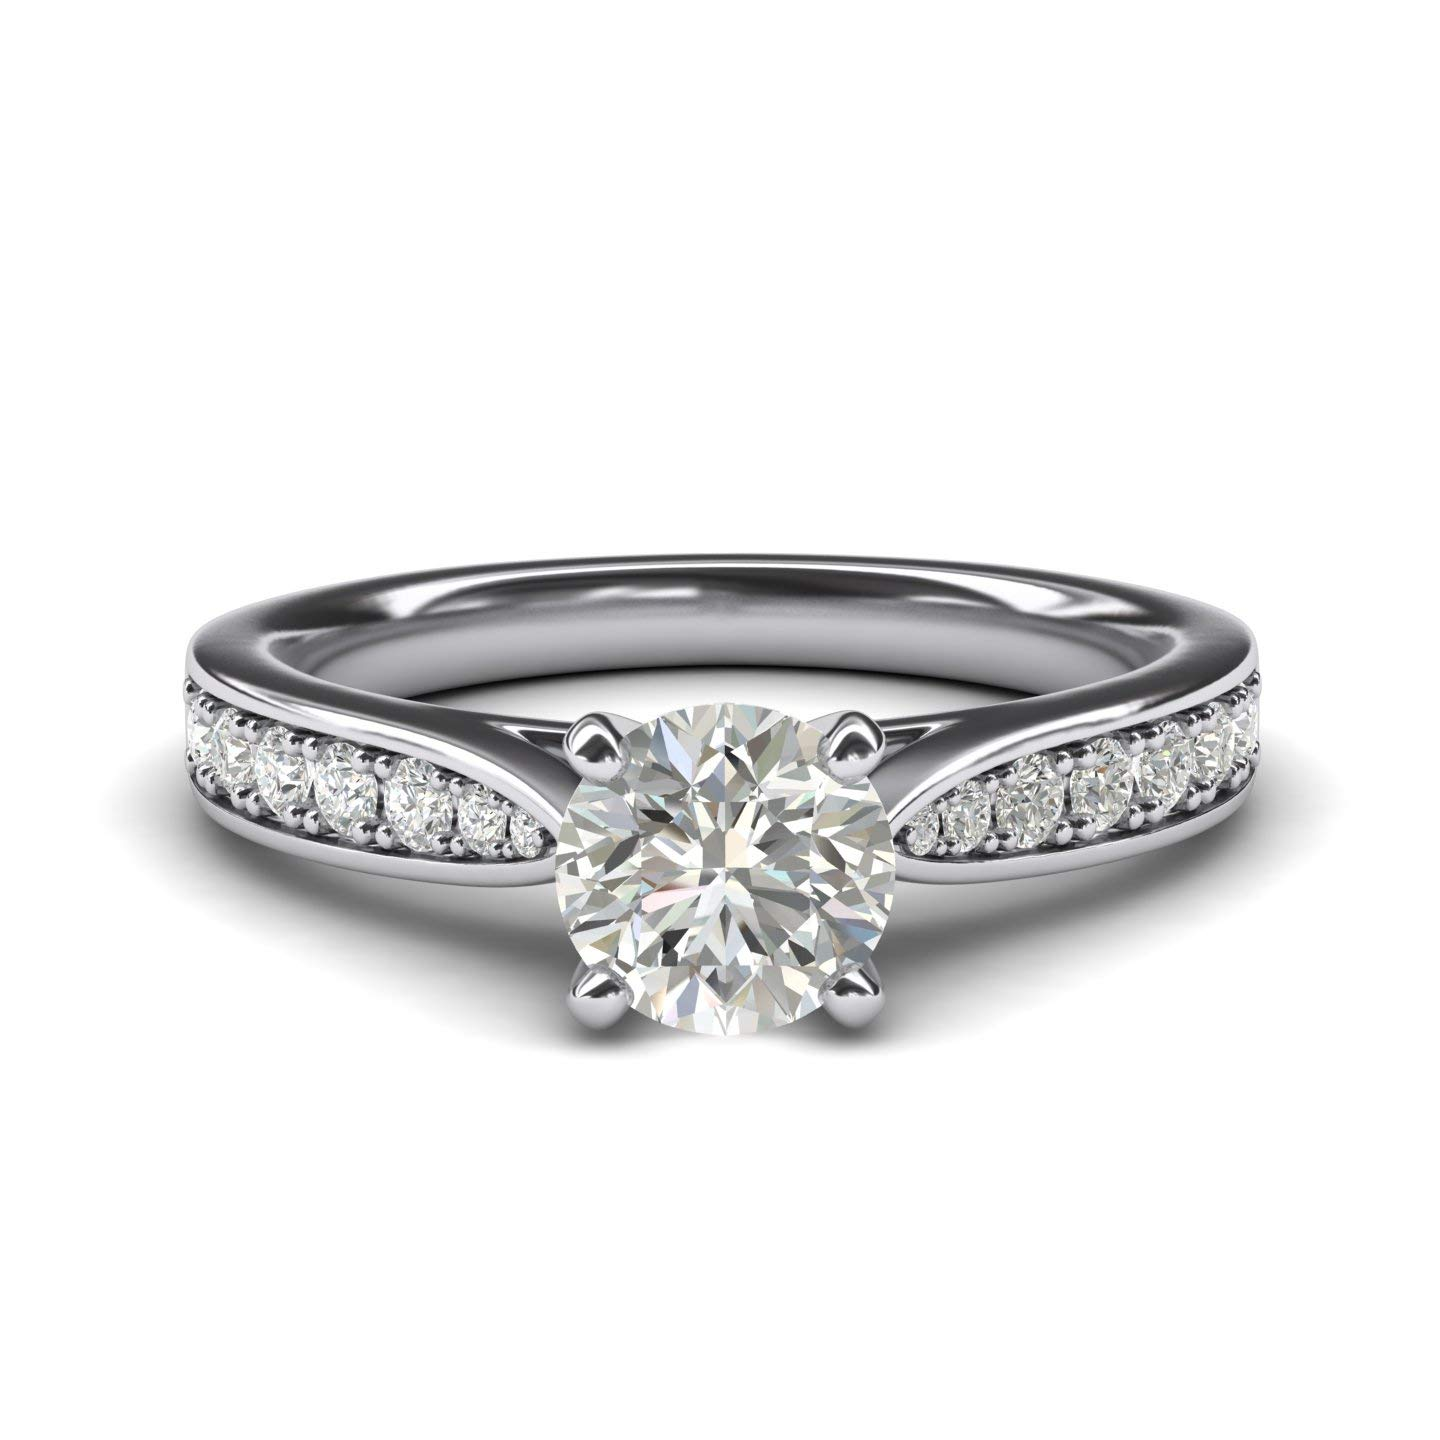 Women's Sterling Silver 1CT Classic 4-Prong Simulated Round Cut Diamond Engagement Ring With Graduated Side Stones (4)